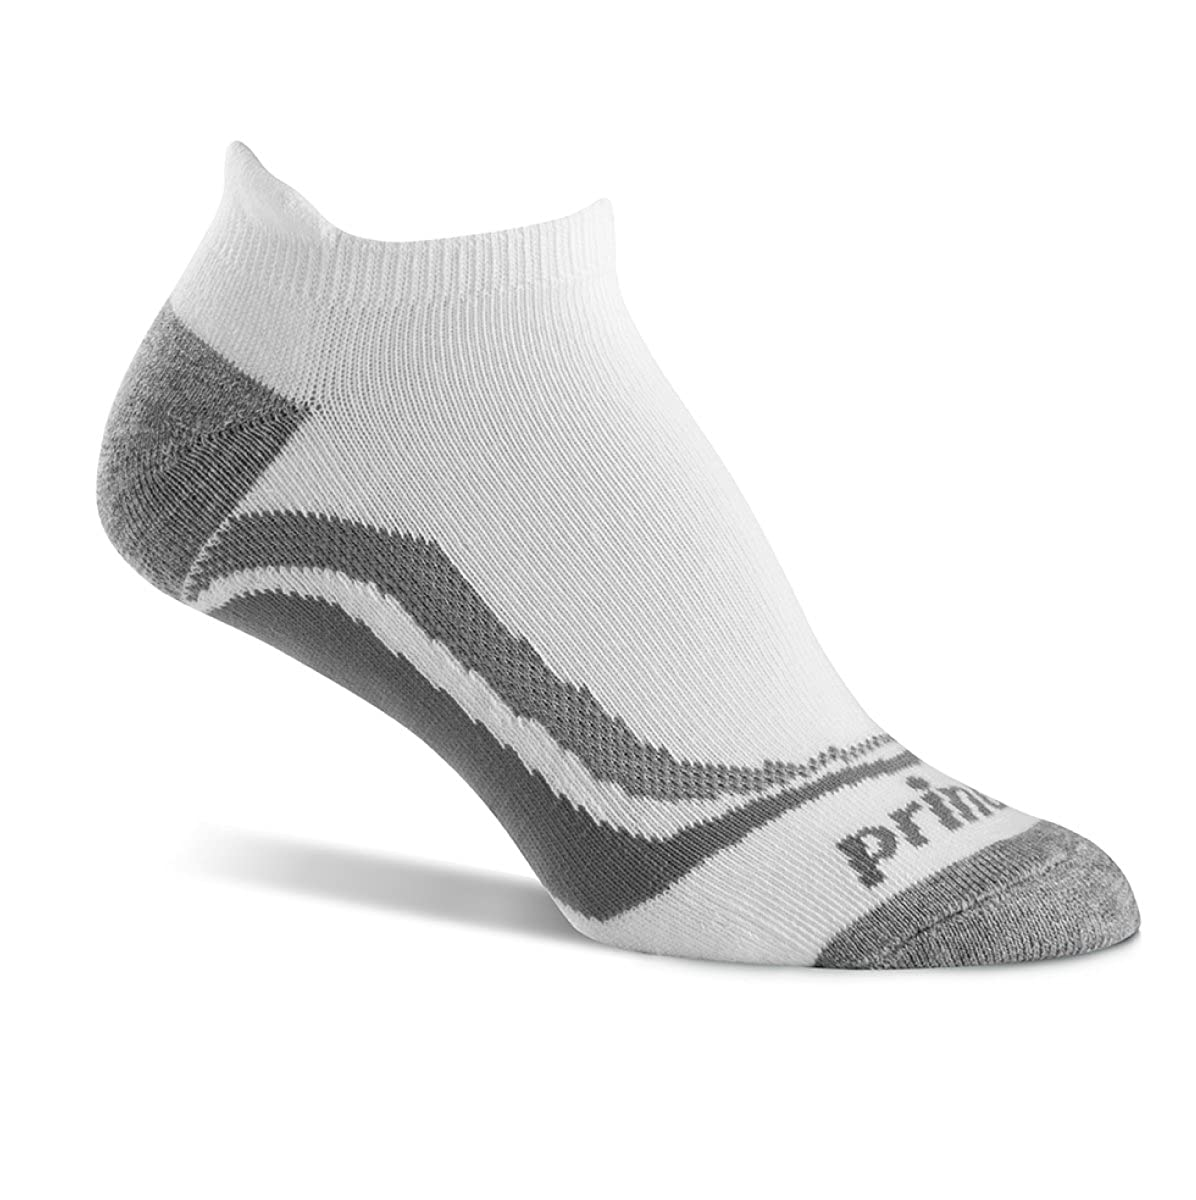 Prince Women/'s Low Cut Tab Athletic Socks with Cushion for Running and Casual Use Tennis 6 Pair Pack